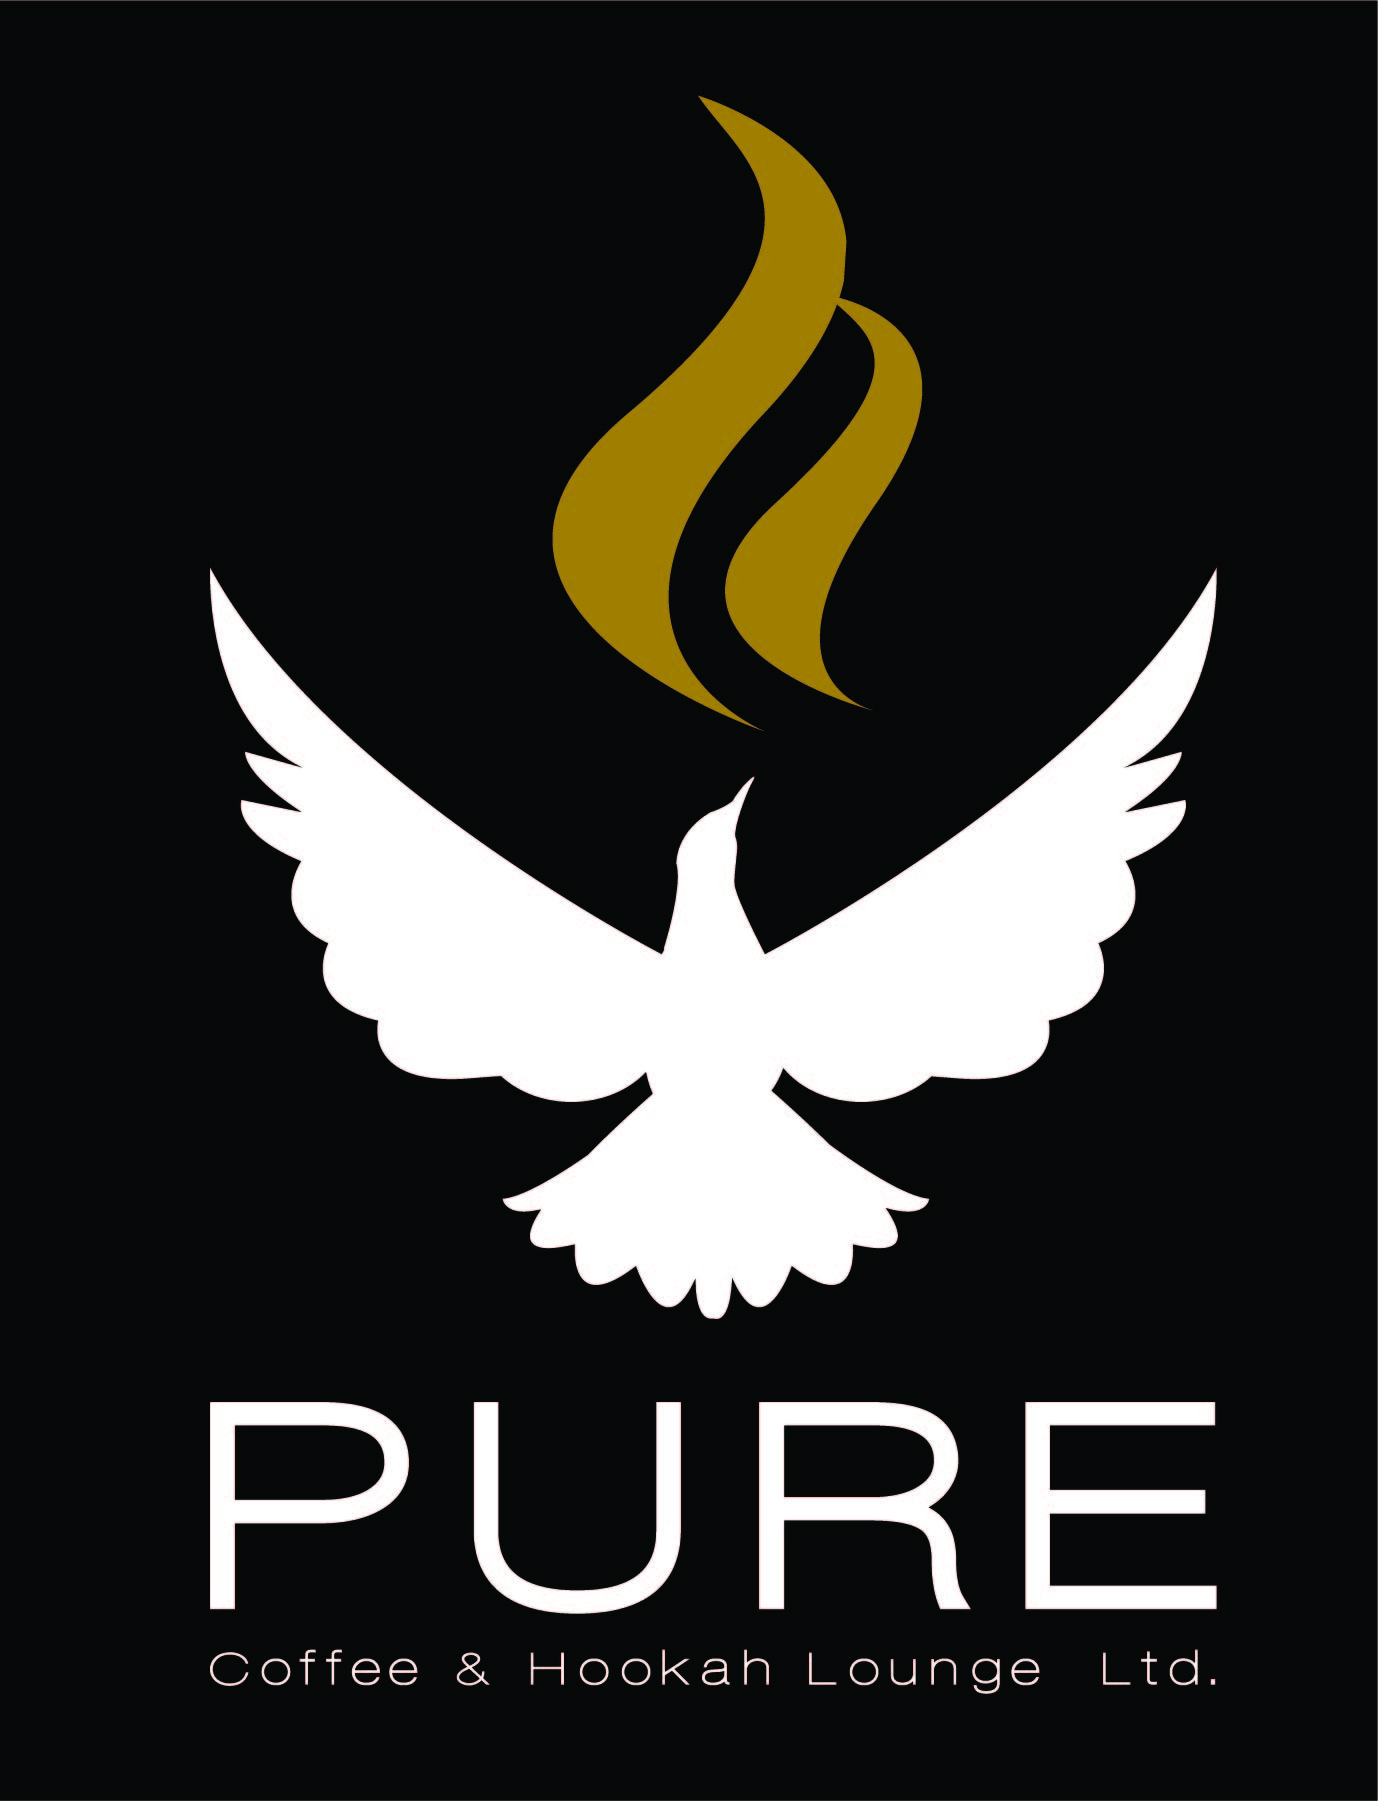 The PURE logo is of a dove with smoke/steam to represent both coffee and hookah